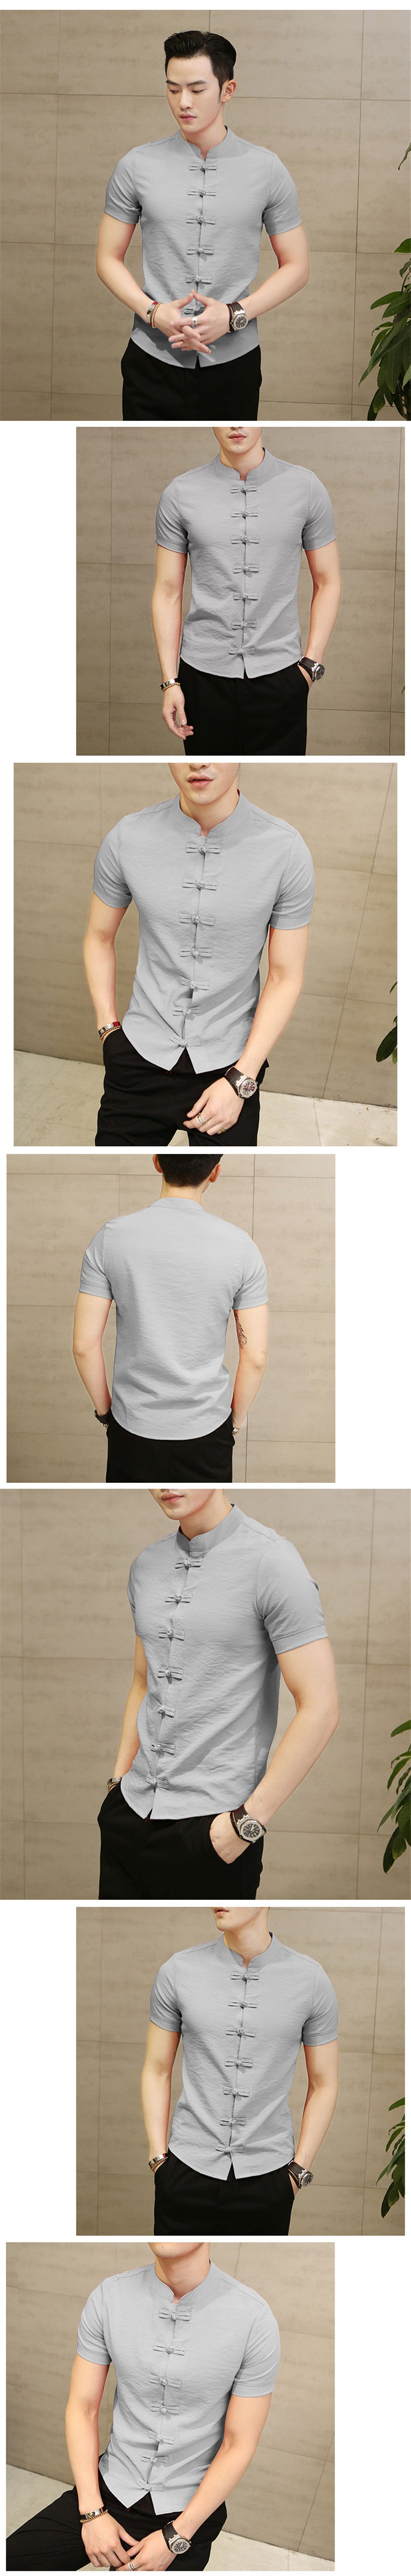 Linen Slim Fit Short Sleeves Shirt